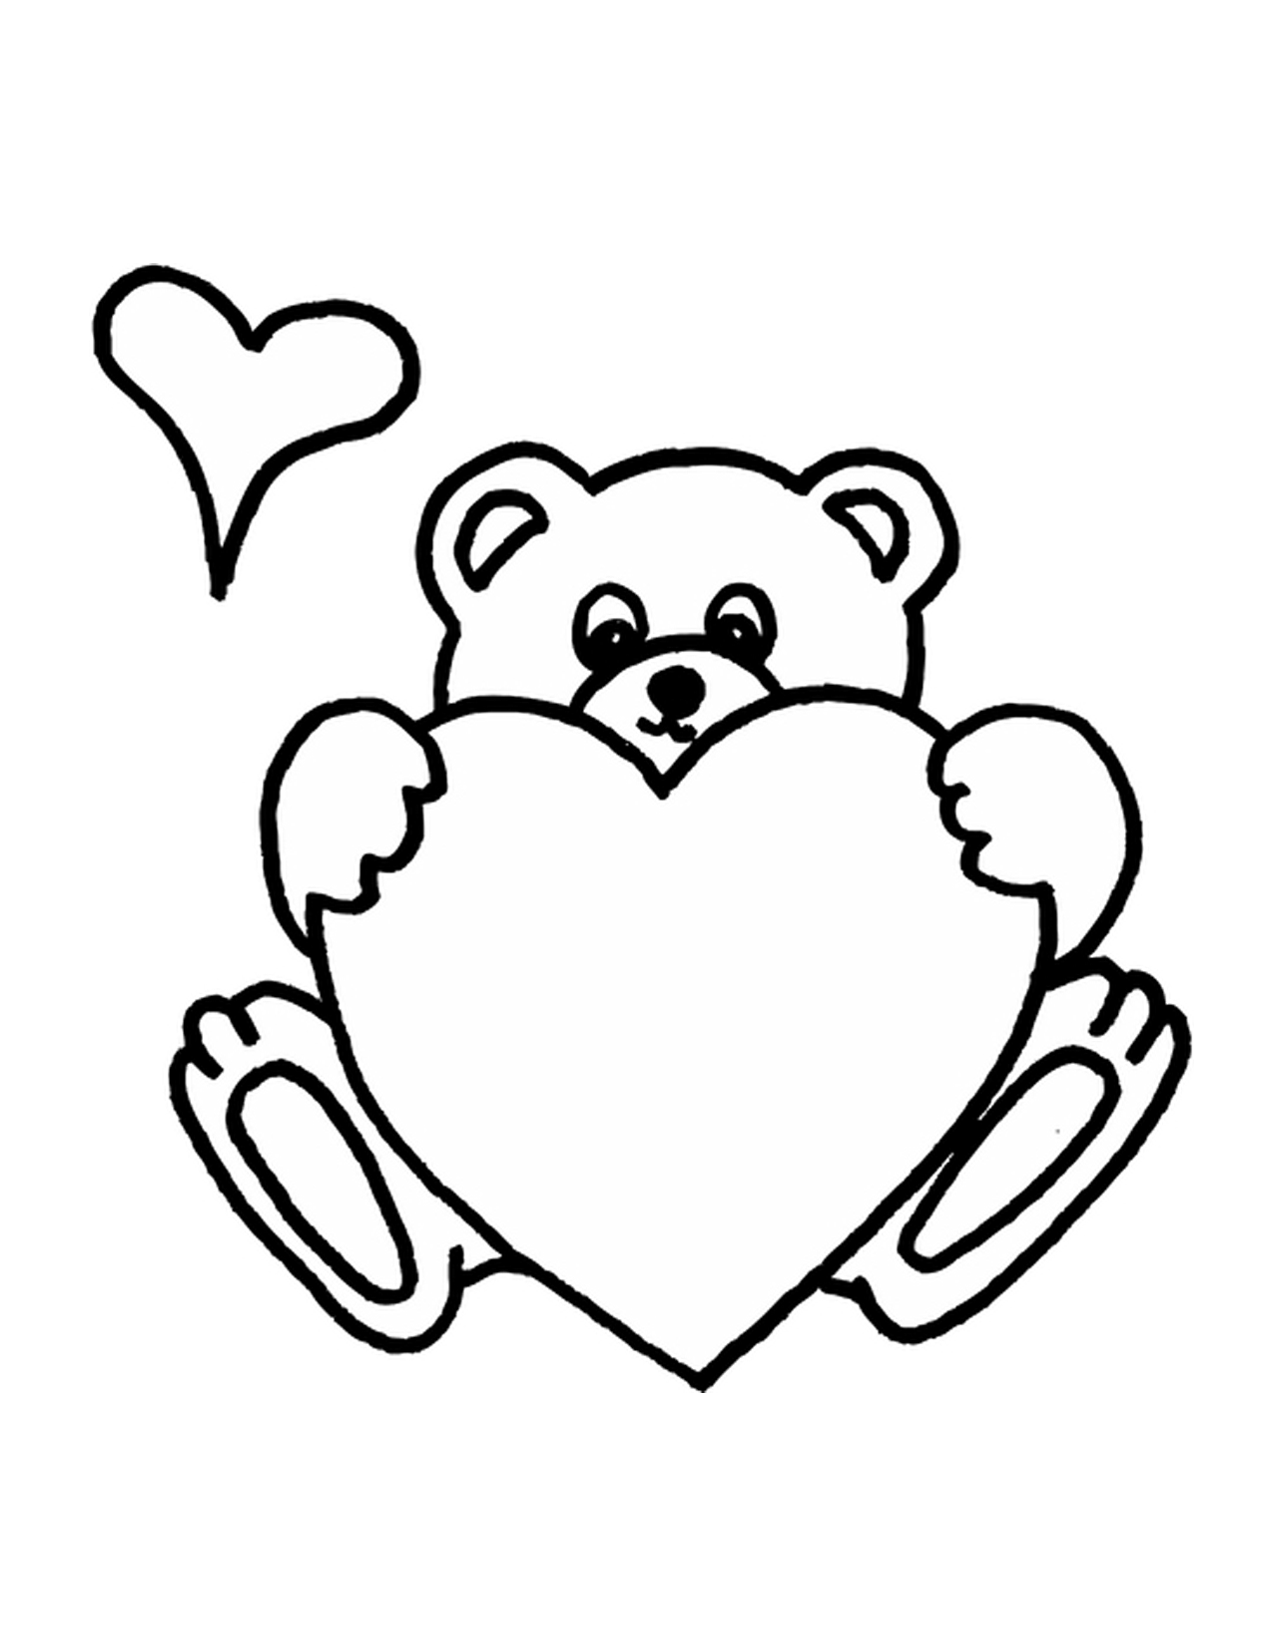 Cute Teddy Bear Coloring Pages coloring page teddy bear